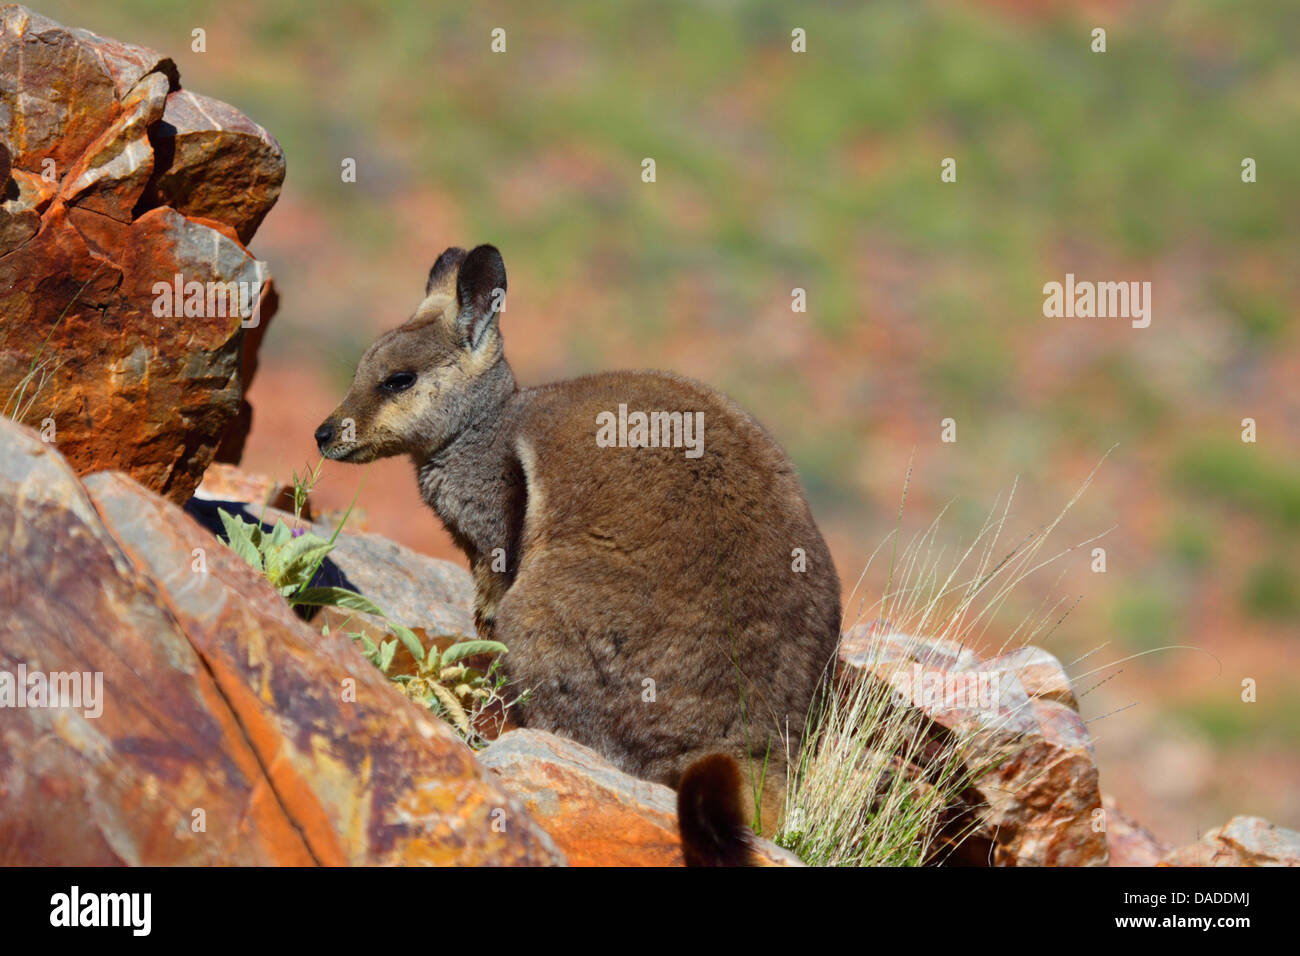 Black-footed rock wallaby (Petrogale lateralis), sitting on rocks, Australia, Northern Territory, Western MacDonnell - Stock Image